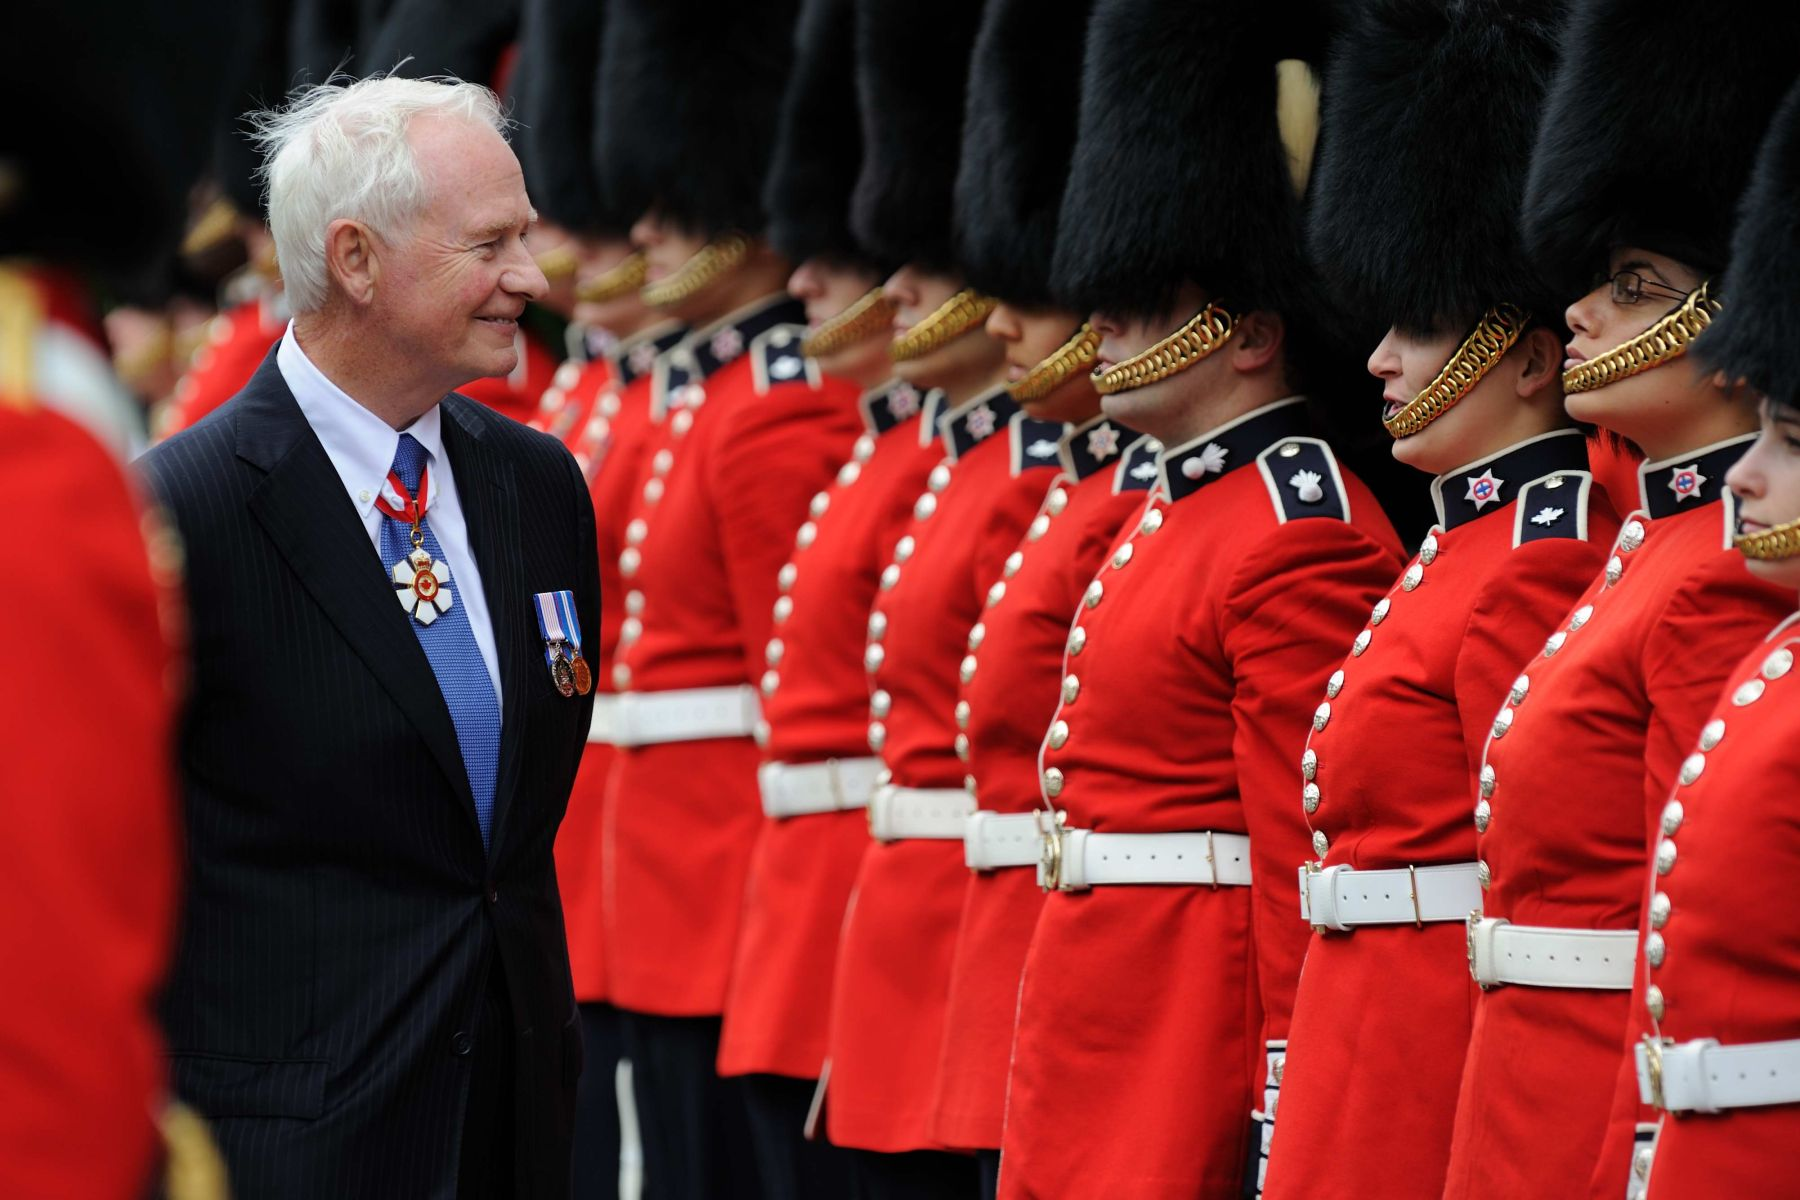 His Excellency inspected the Guard of Honour formed by the Governor General's Foot Guards and the Canadian Grenadier Guards.